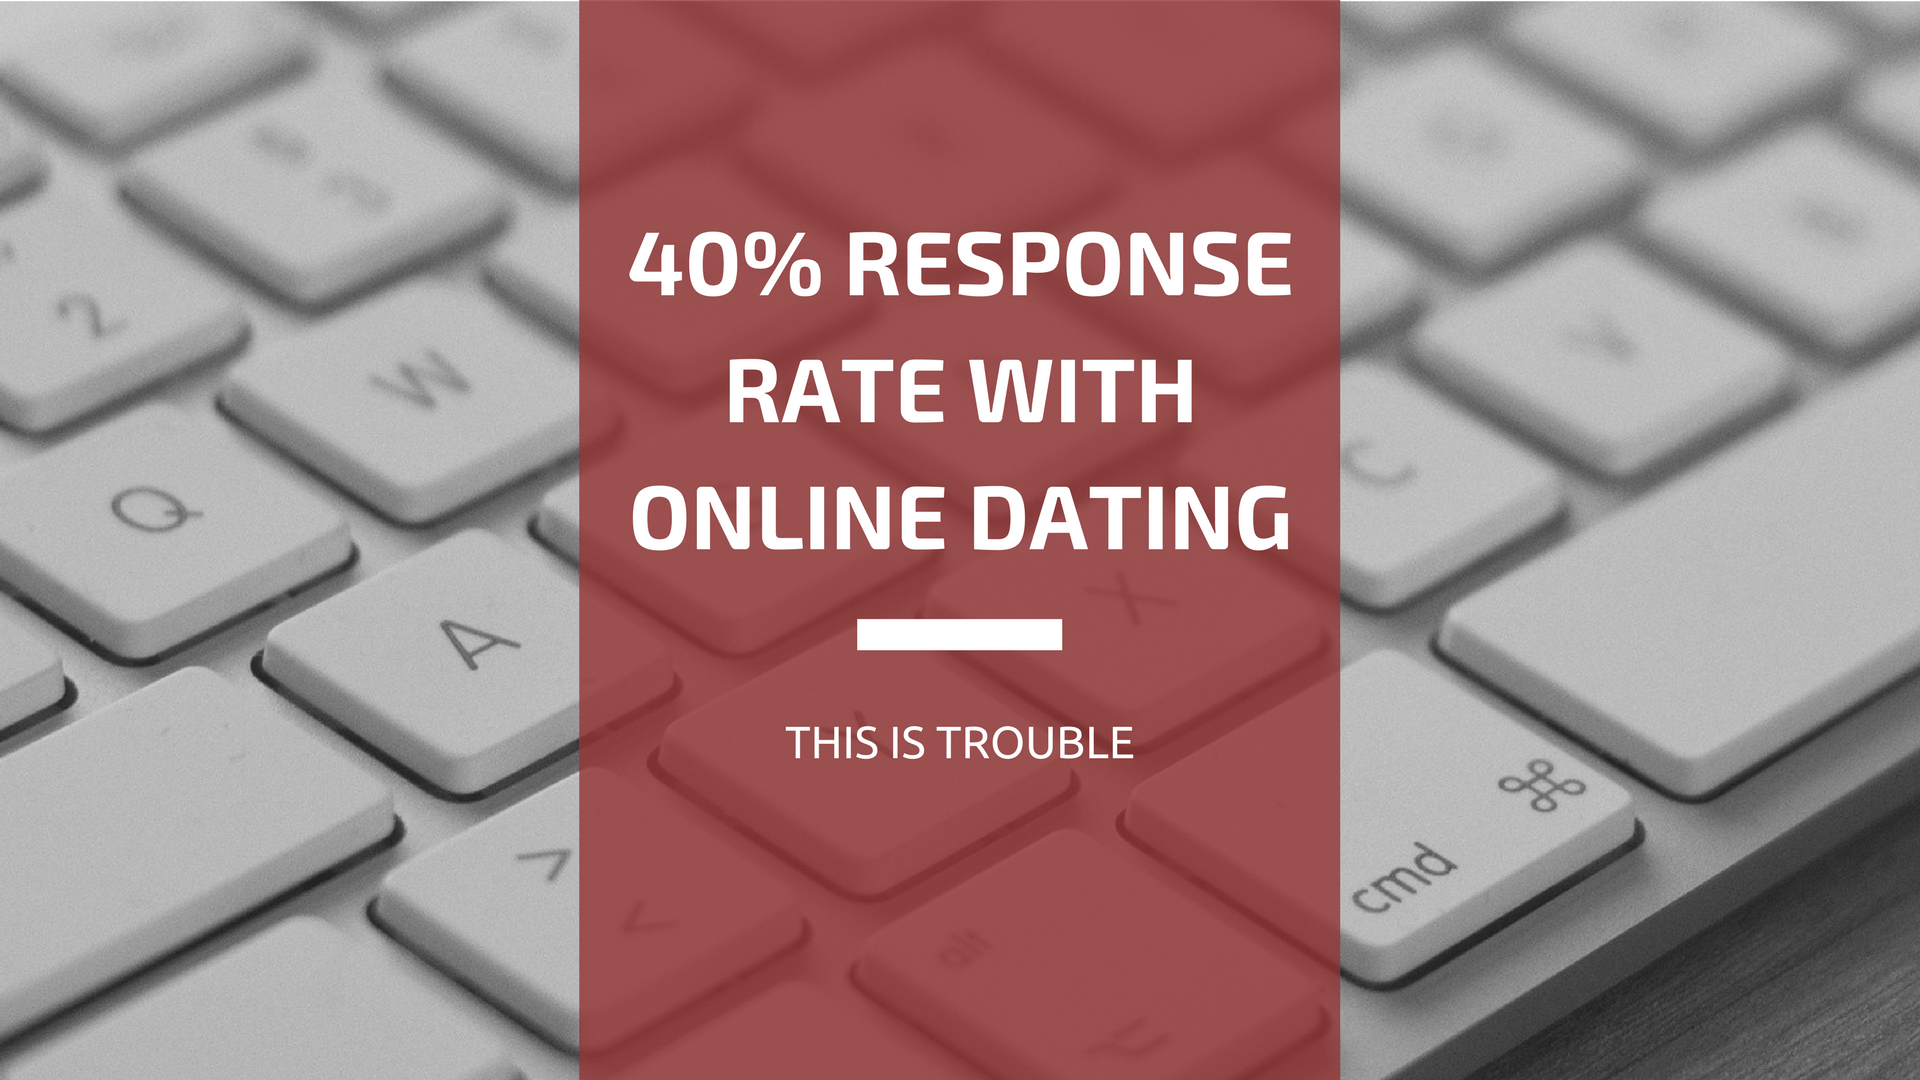 Good response rate online dating